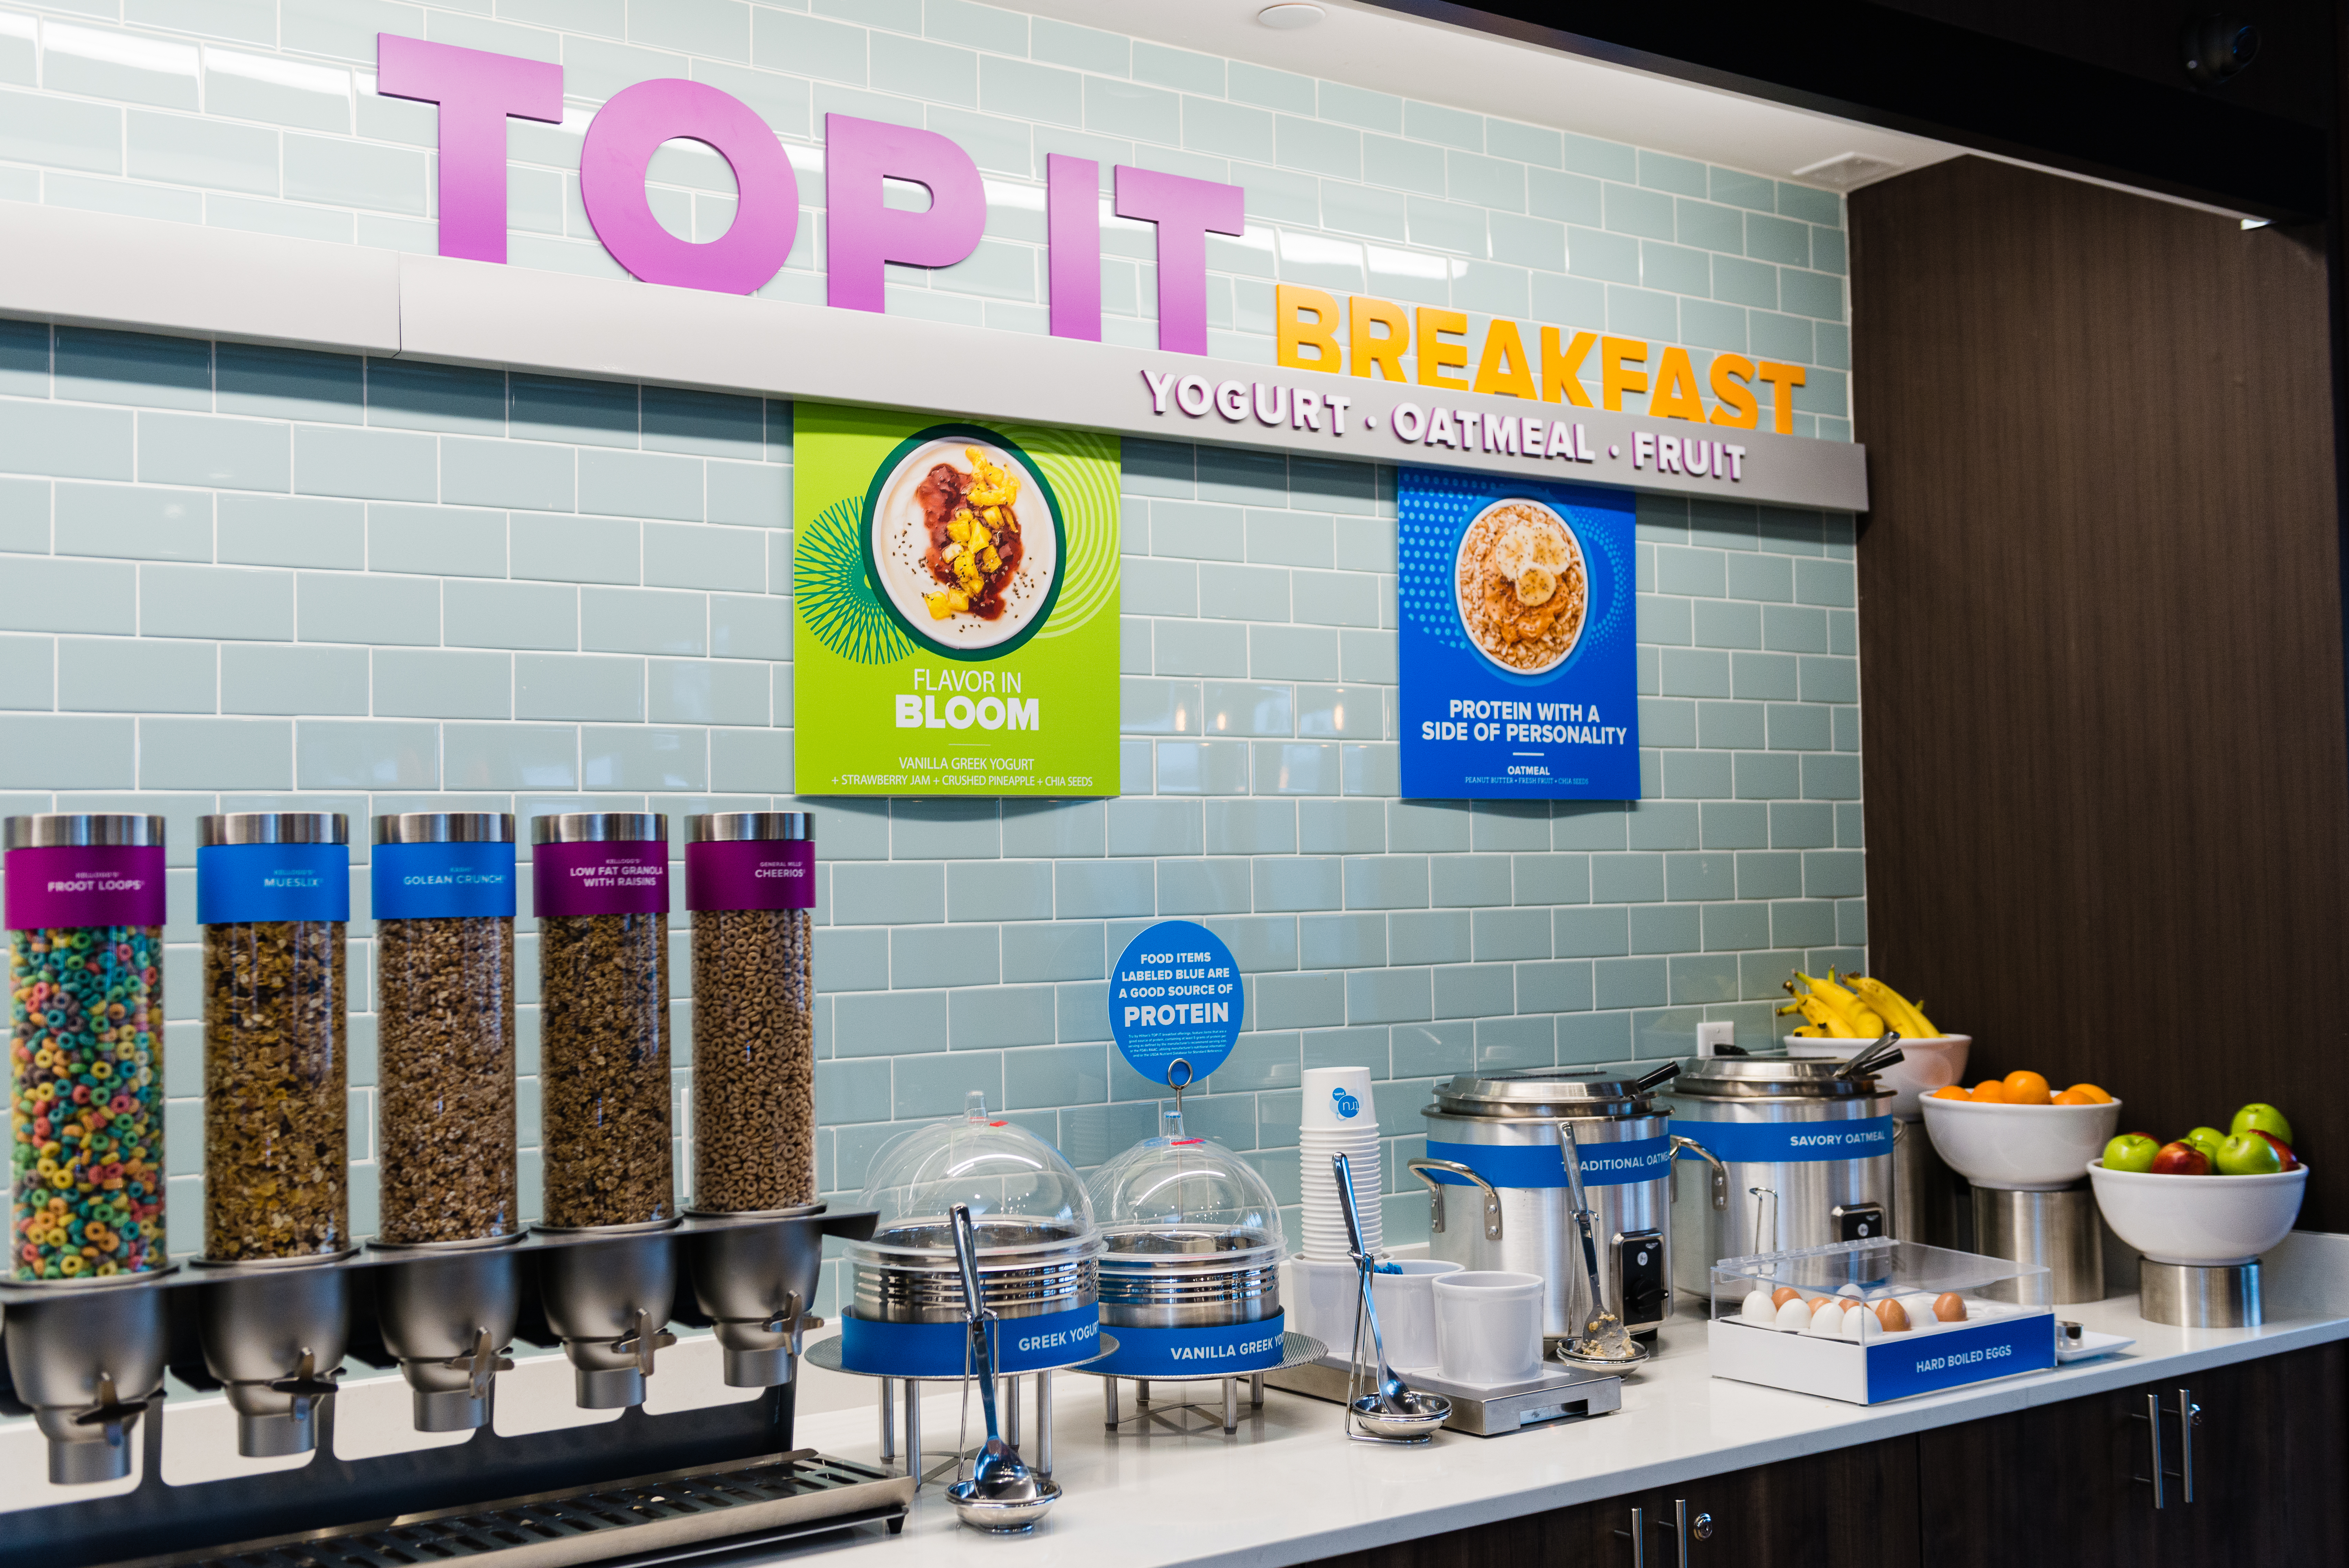 """Breakfast is reinvented with the build-your-own complimentary """"Top It"""" breakfast bar that has 30 sweet and savory toppings so guests can create their own healthy or indulgent morning masterpieces. (Photo: Business Wire)"""